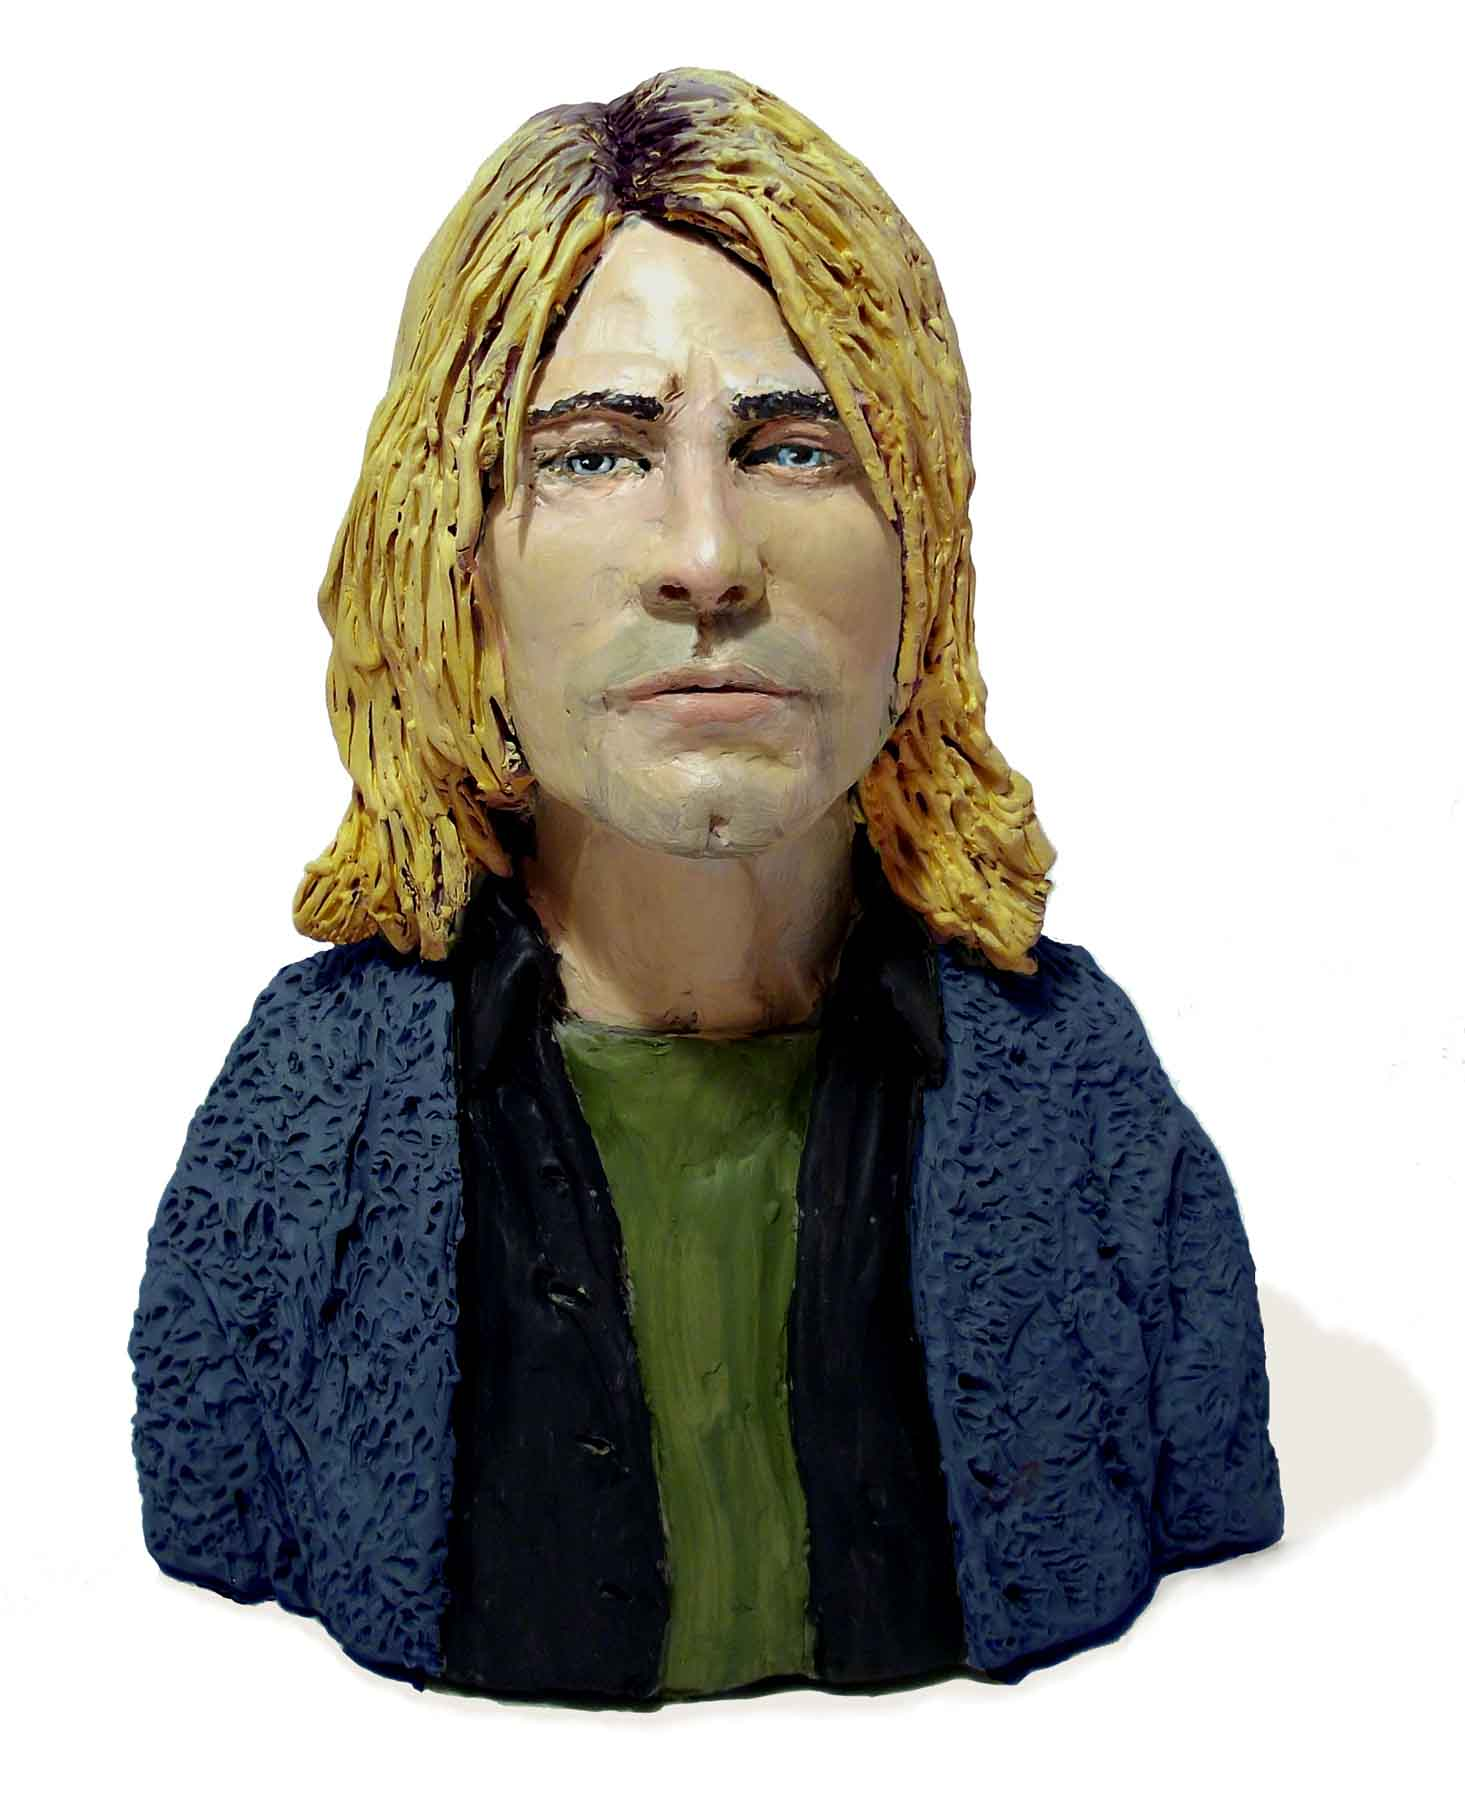 Kurt Cobain for Entertainment Weekly (1 of 5)